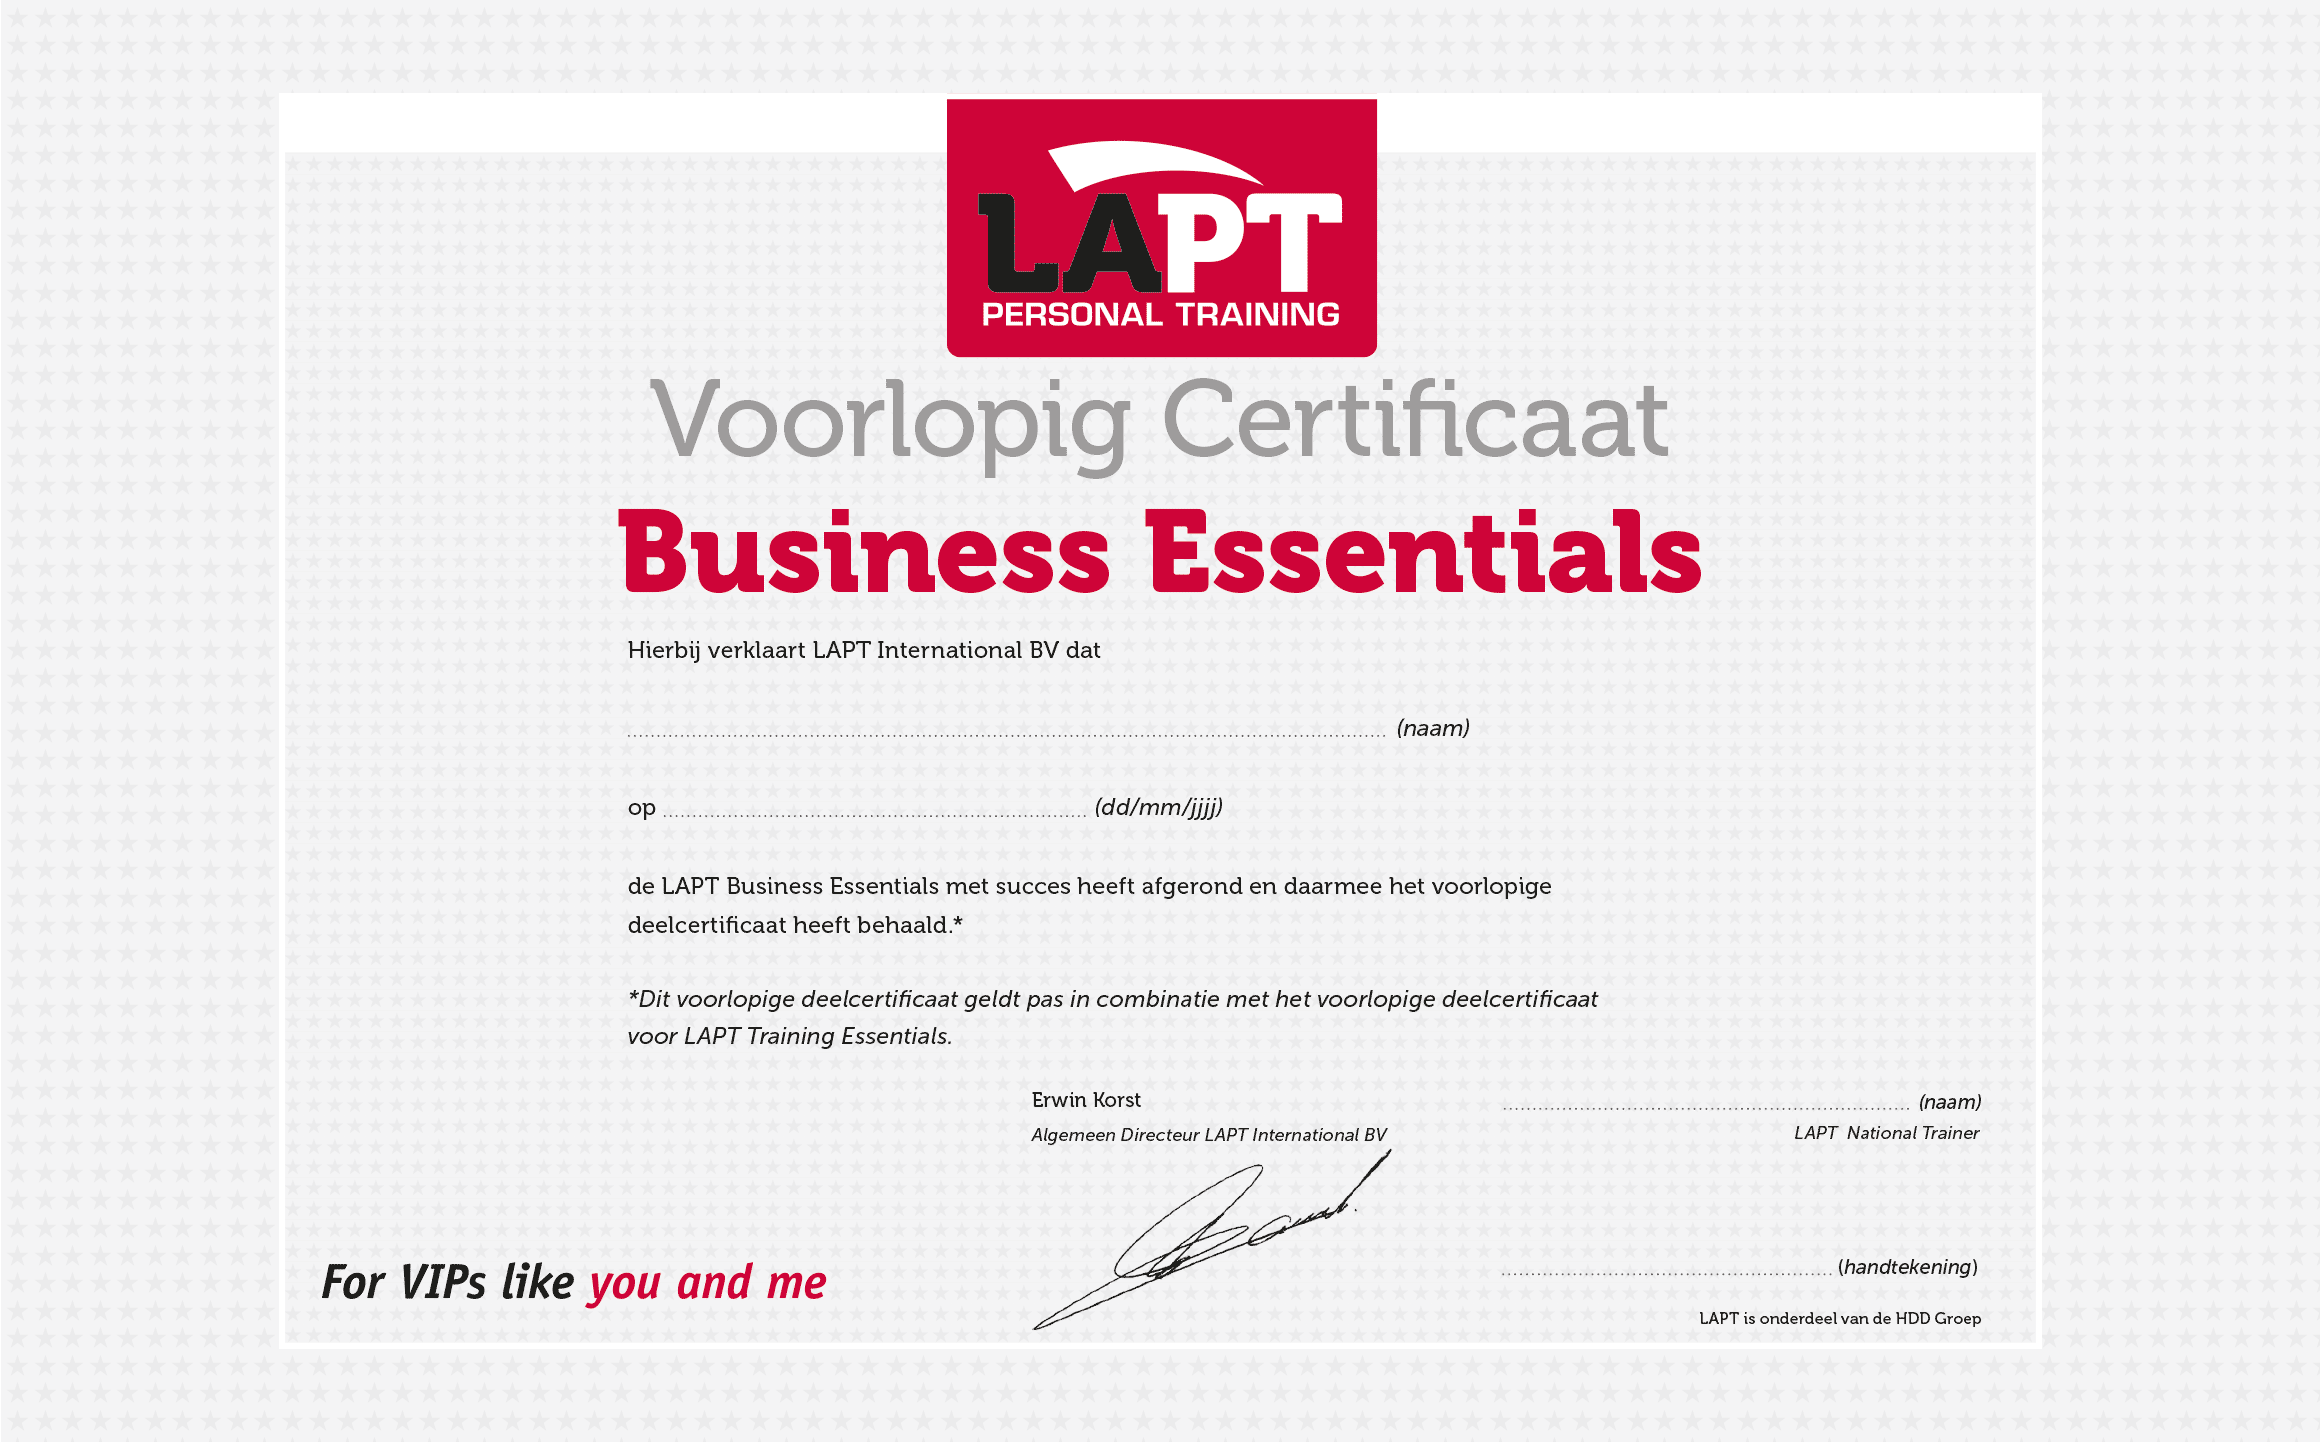 LAPT certificaat business essentials